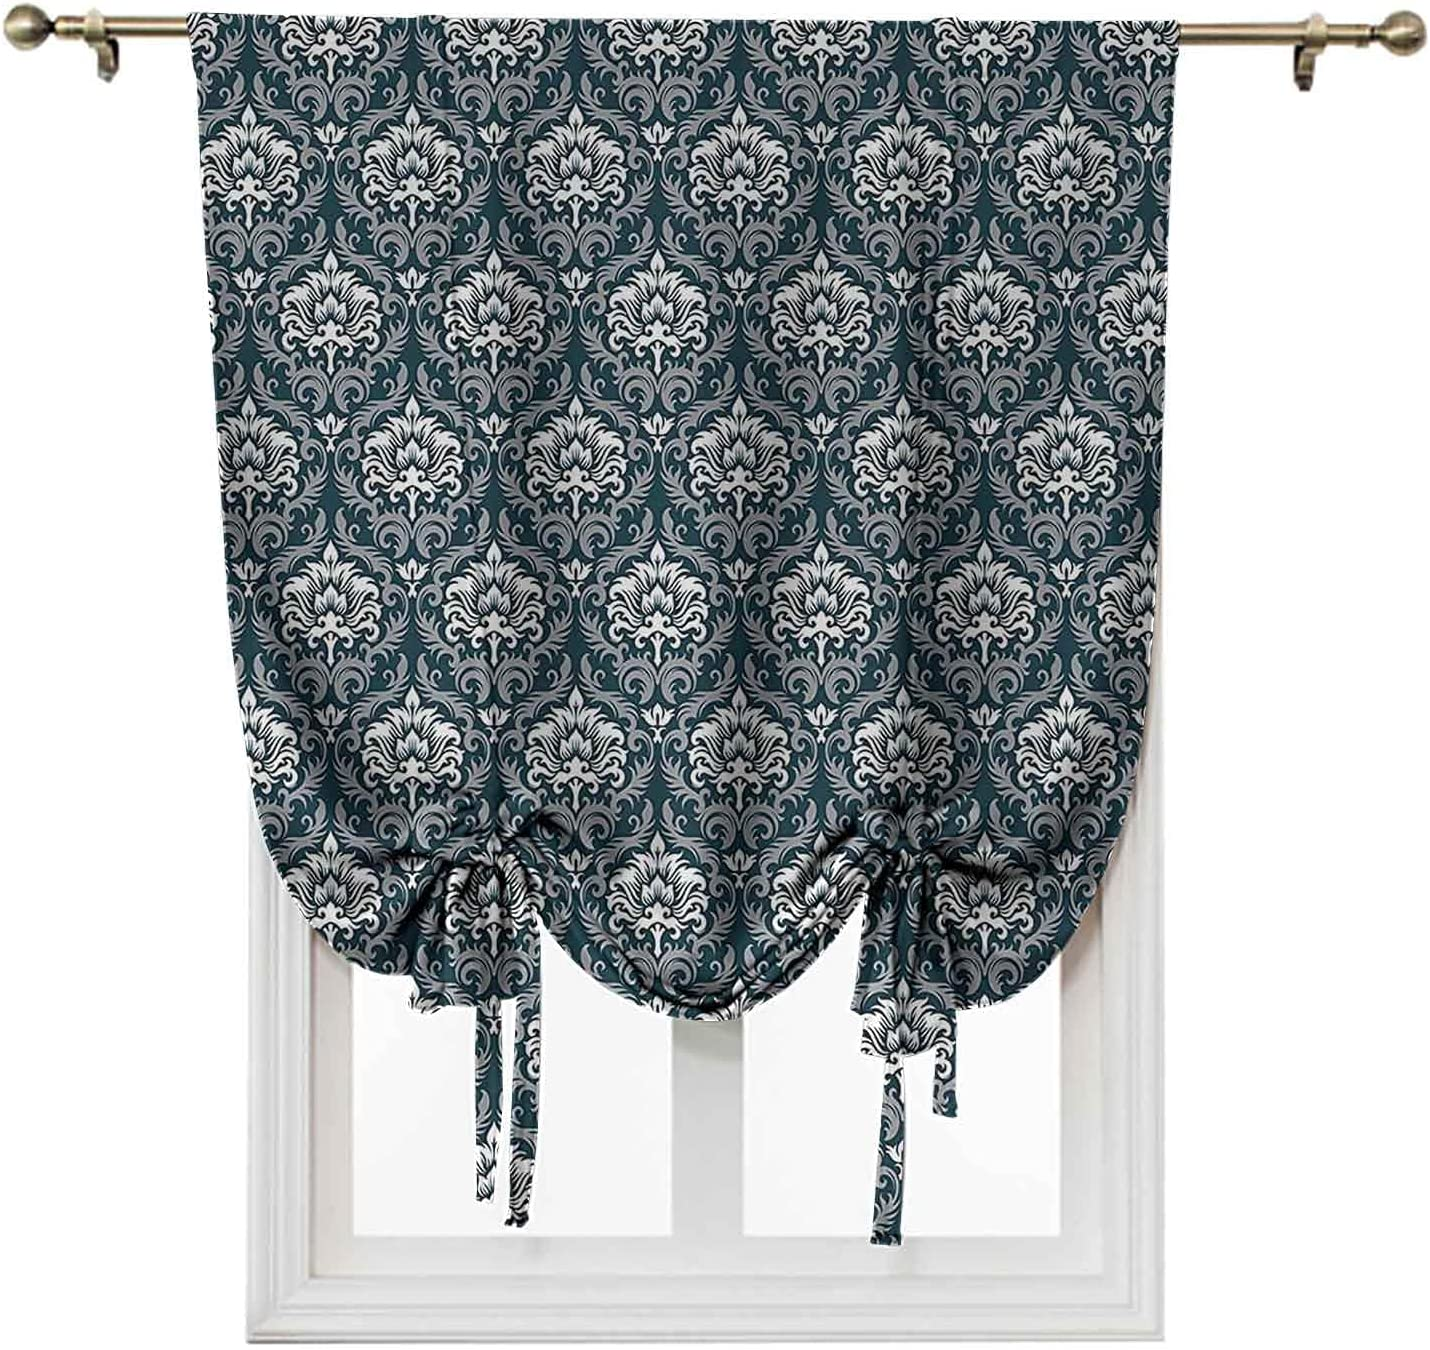 Farmhouse Curtains Mail order cheap All stores are sold 42